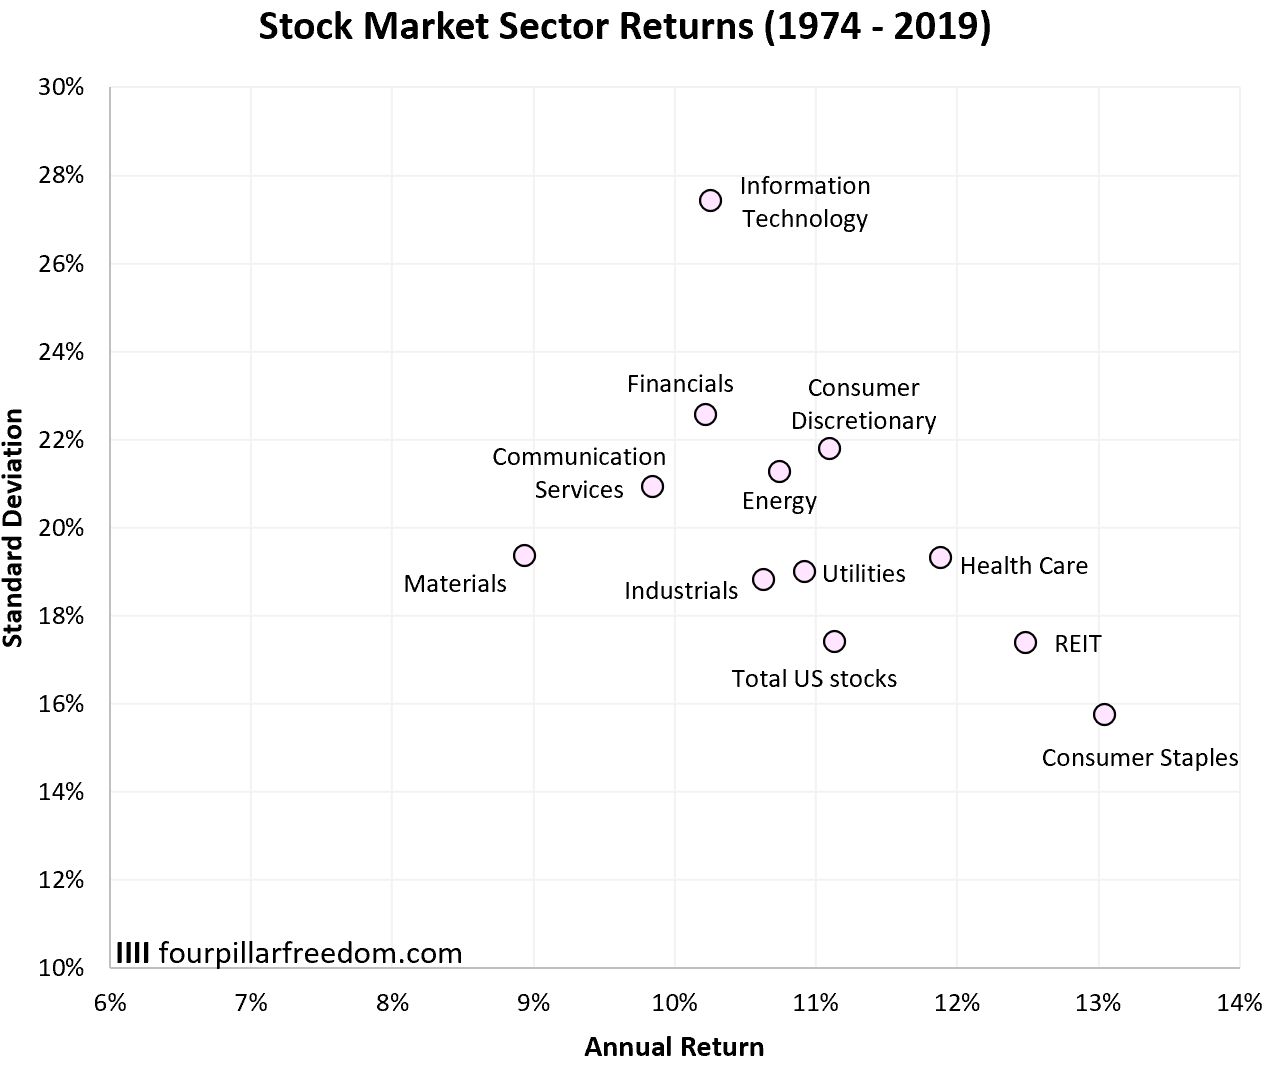 Stock market sector returns by year